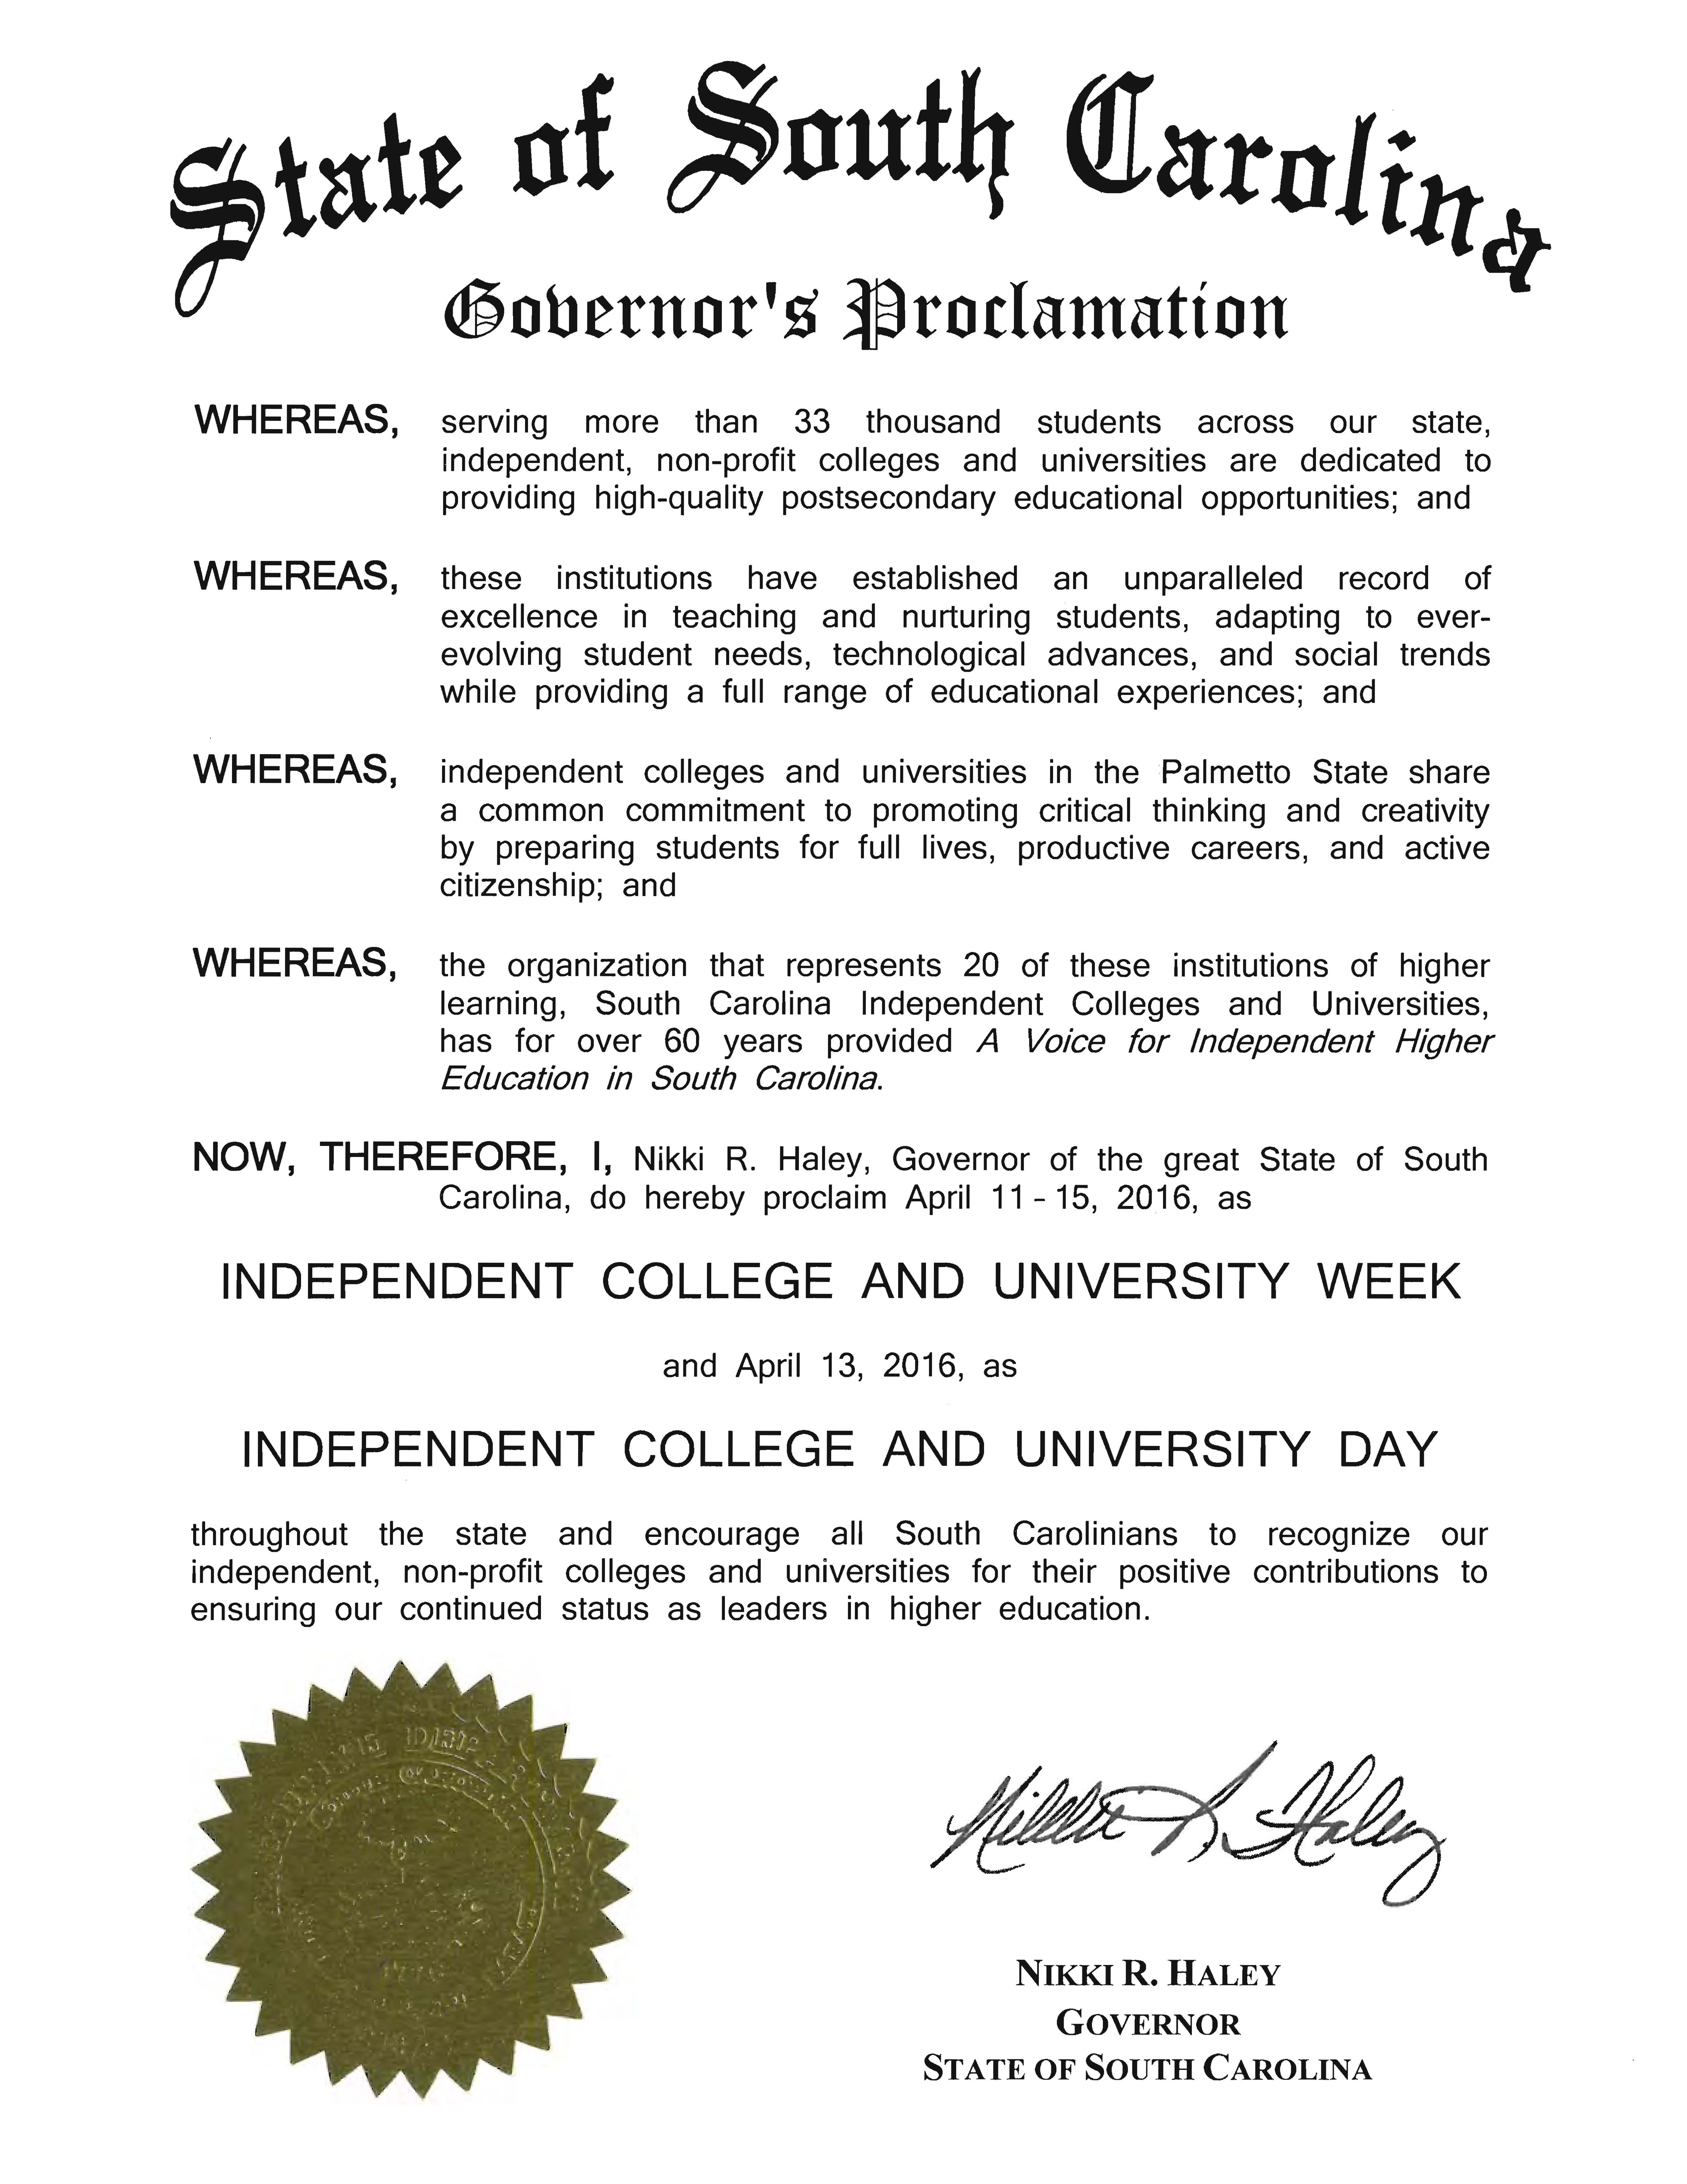 Governor Haley Proclamation - 2016 Independent College and University Week